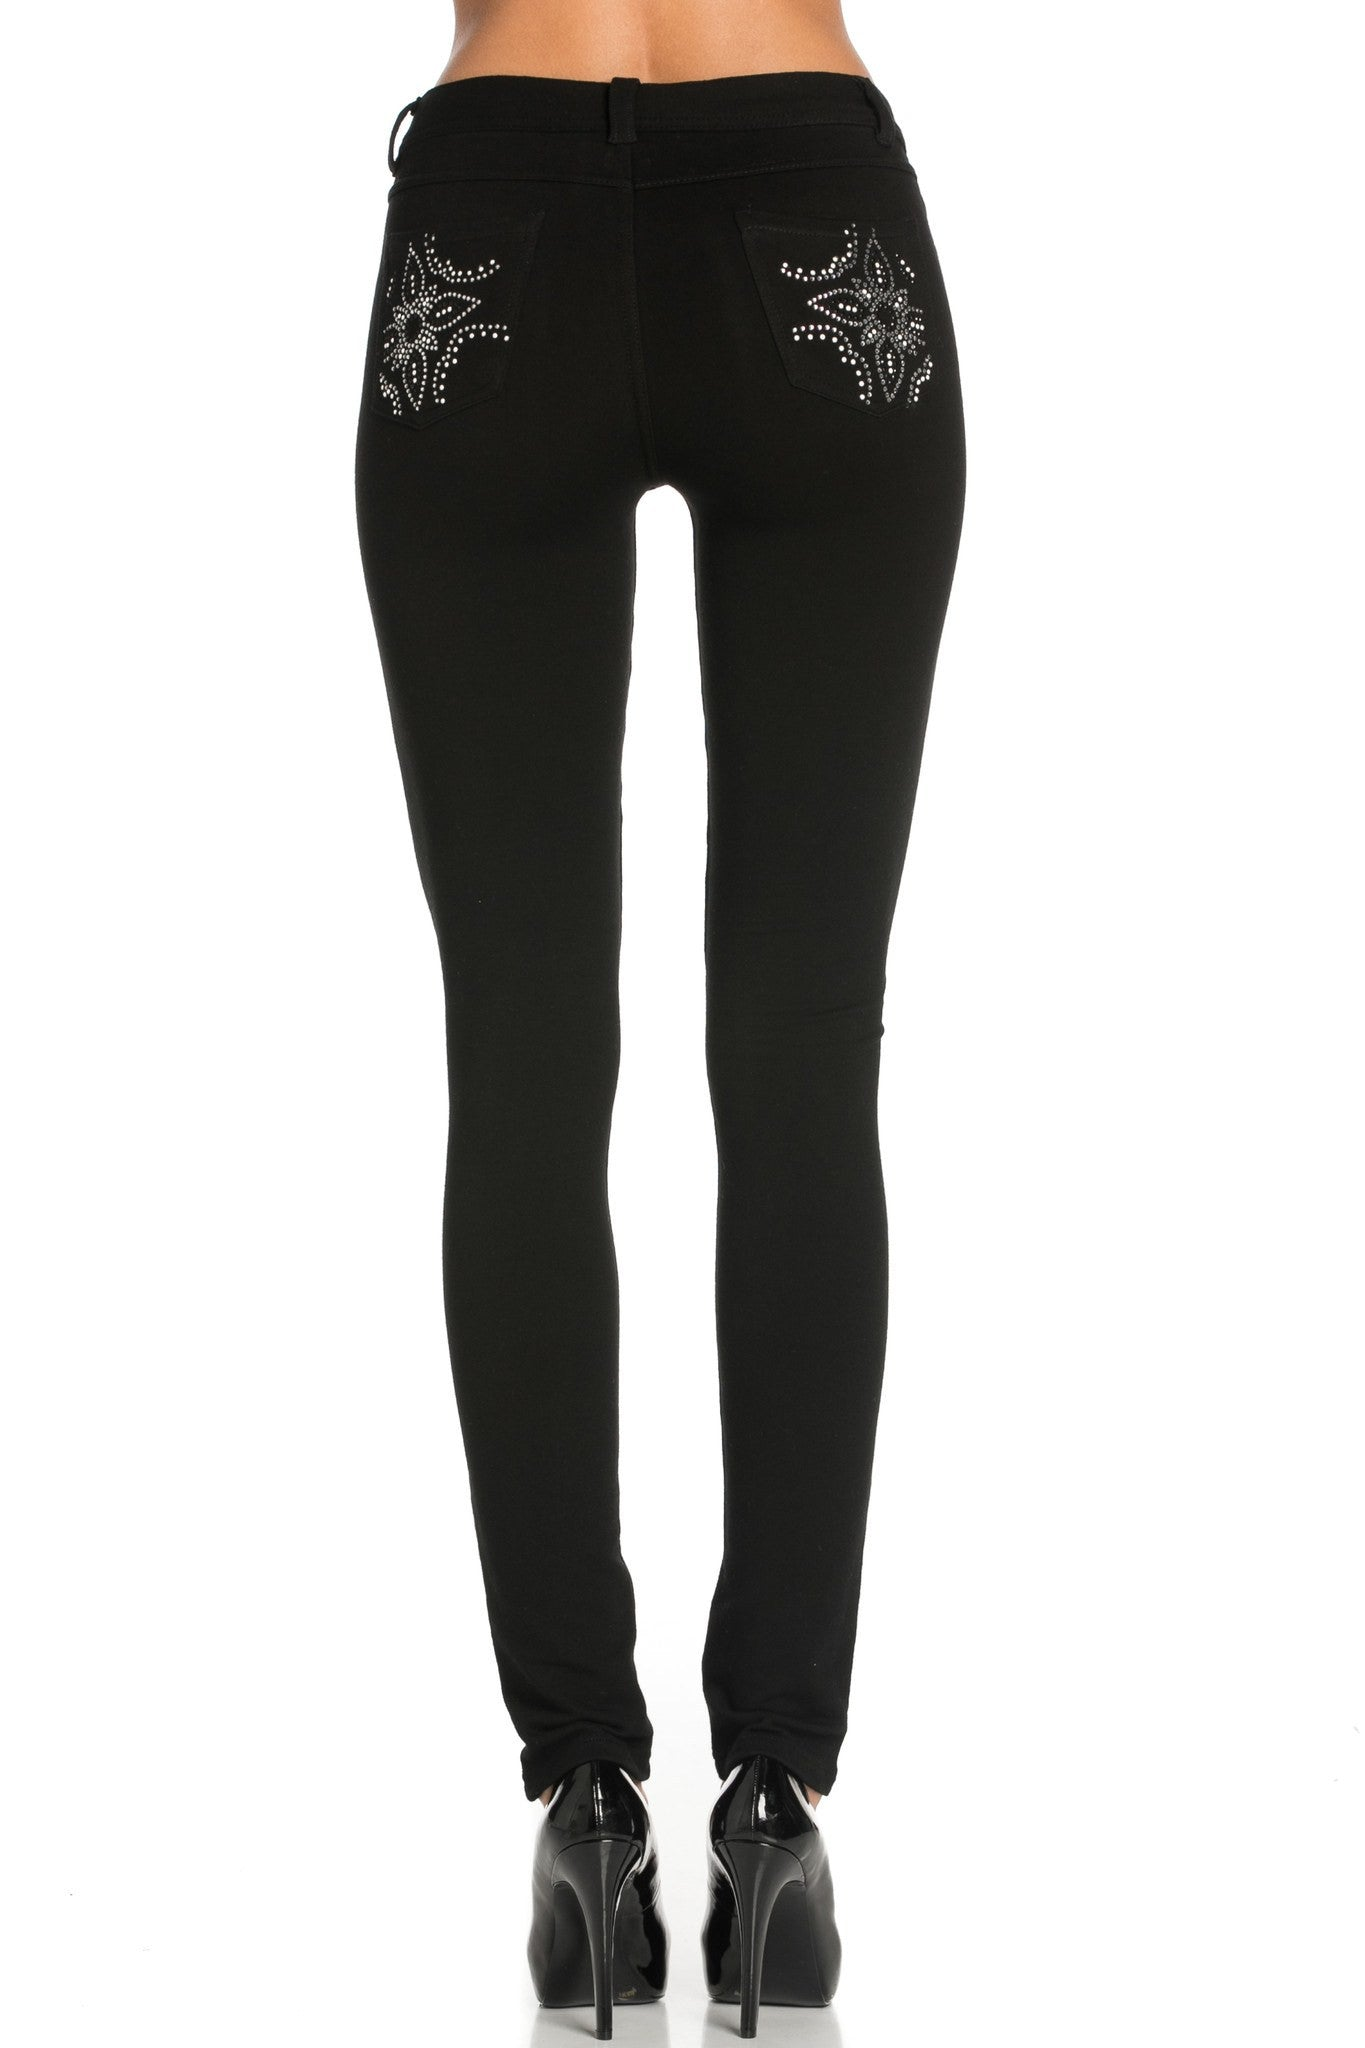 Embellished Stretch Skinny Knit Jegging Pants (Double Star) - Poplooks